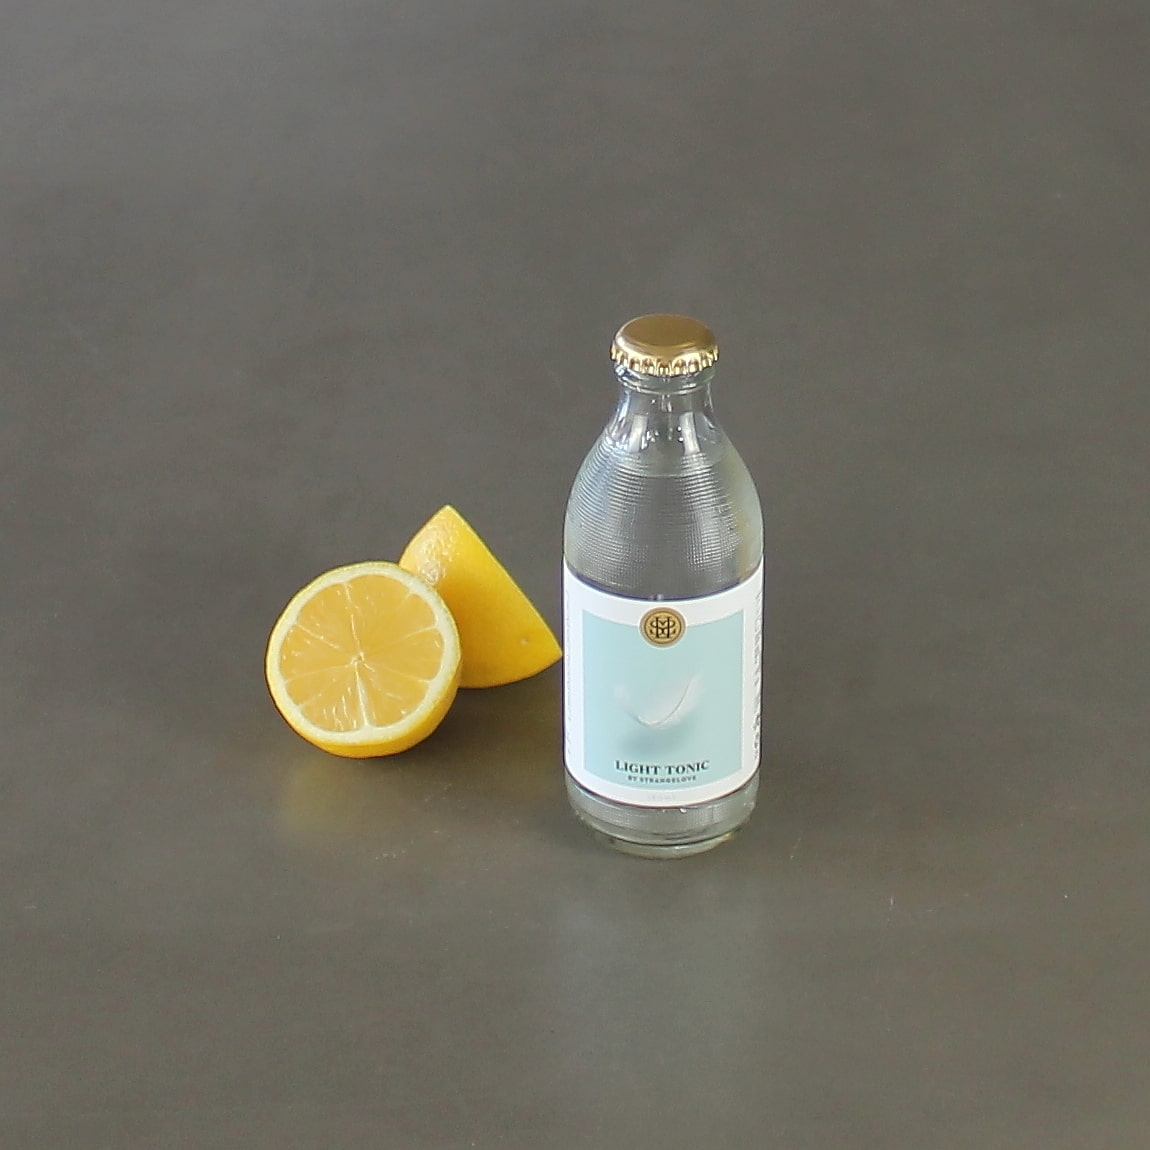 Light Tonic By StrangeLove